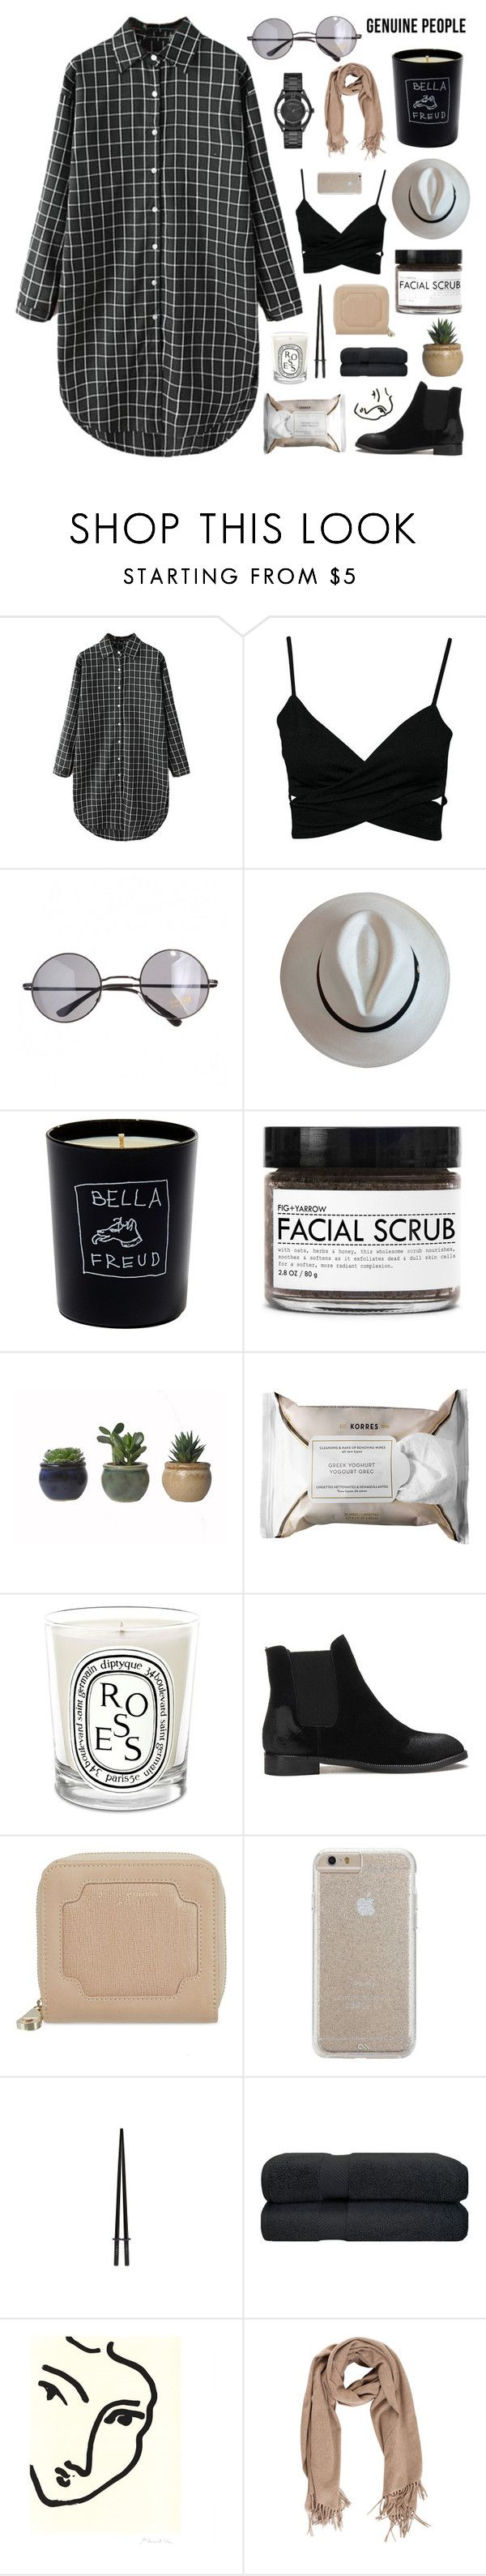 """""""love will tear us apart"""" by jesicacecillia ❤ liked on Polyvore featuring Retrò, Bella Freud, Fig+Yarrow, Korres, Diptyque, Aspinal of London, Case-Mate, Marc by Marc Jacobs and Genuine_People"""